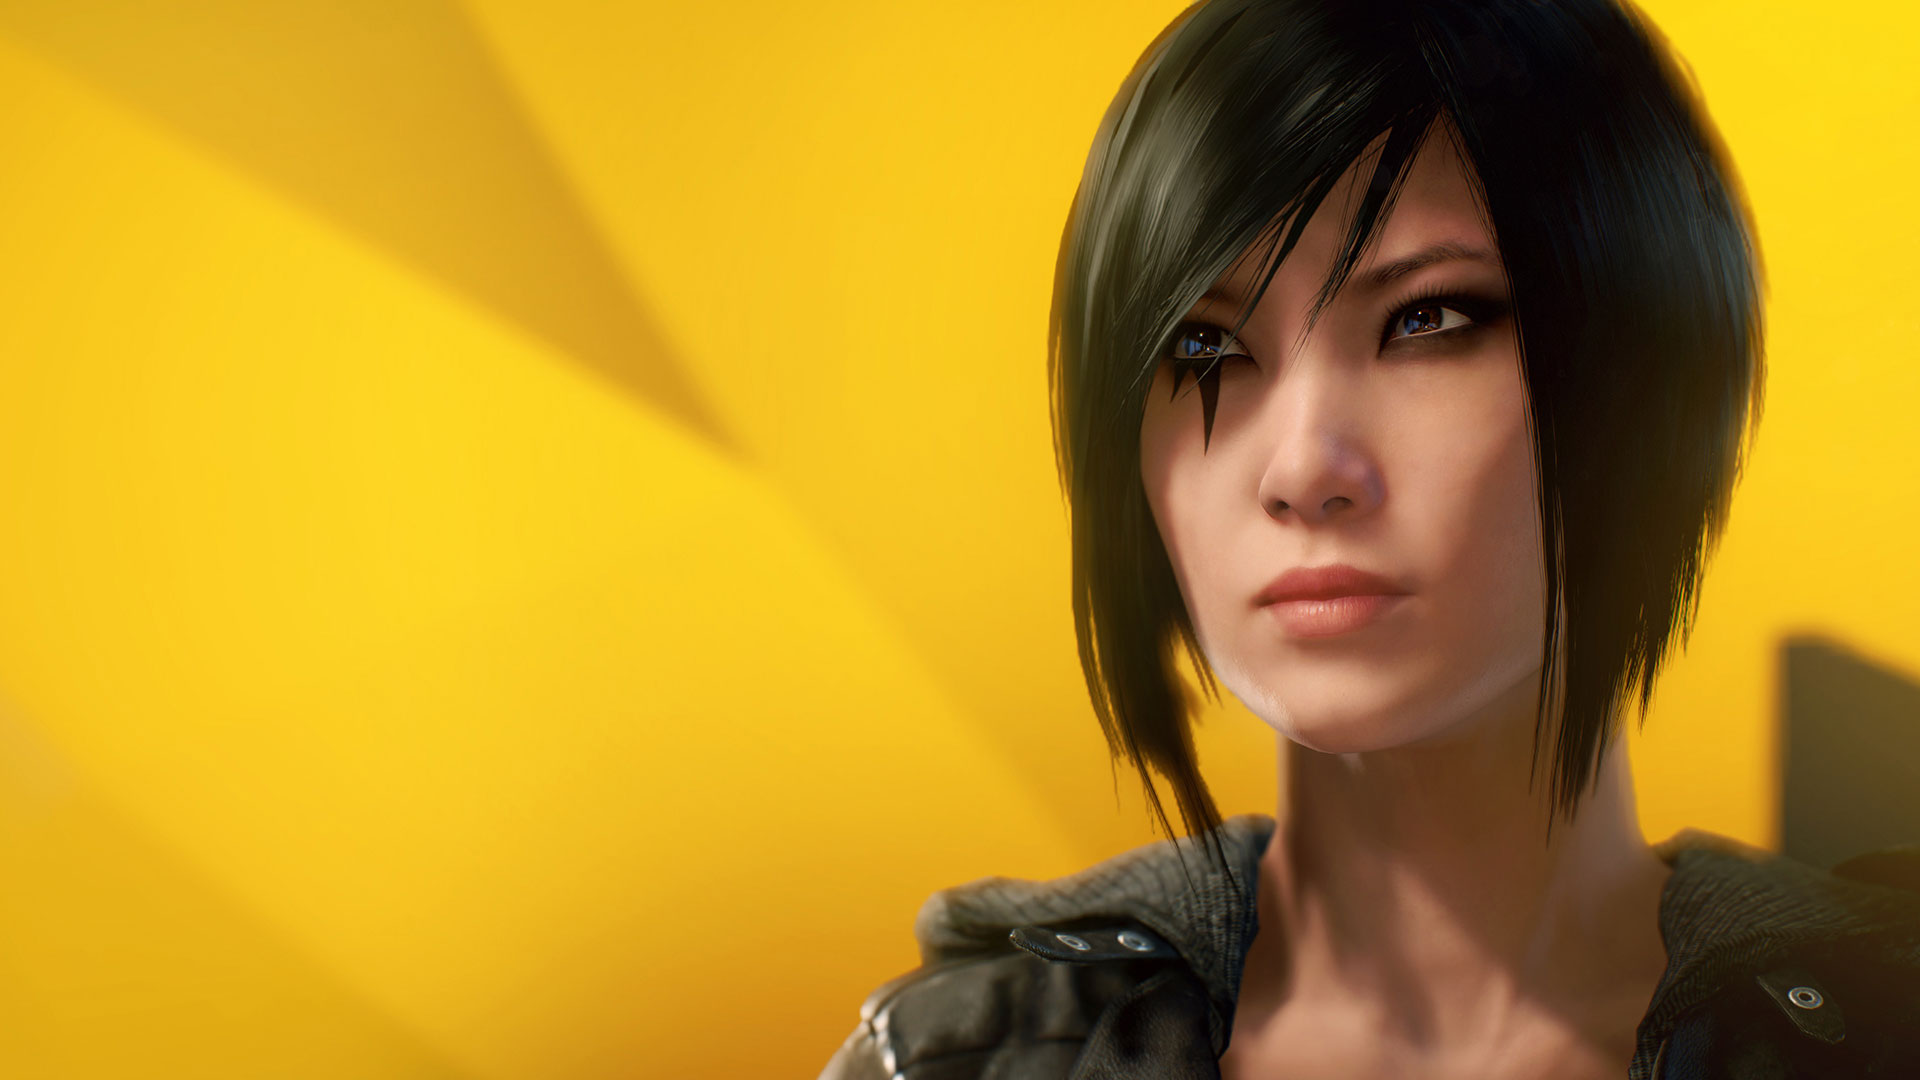 ufifa16coins - Mirror's Edge Catalyst's Story Is About Faith Finding Her Calling in Life and Society- DICE